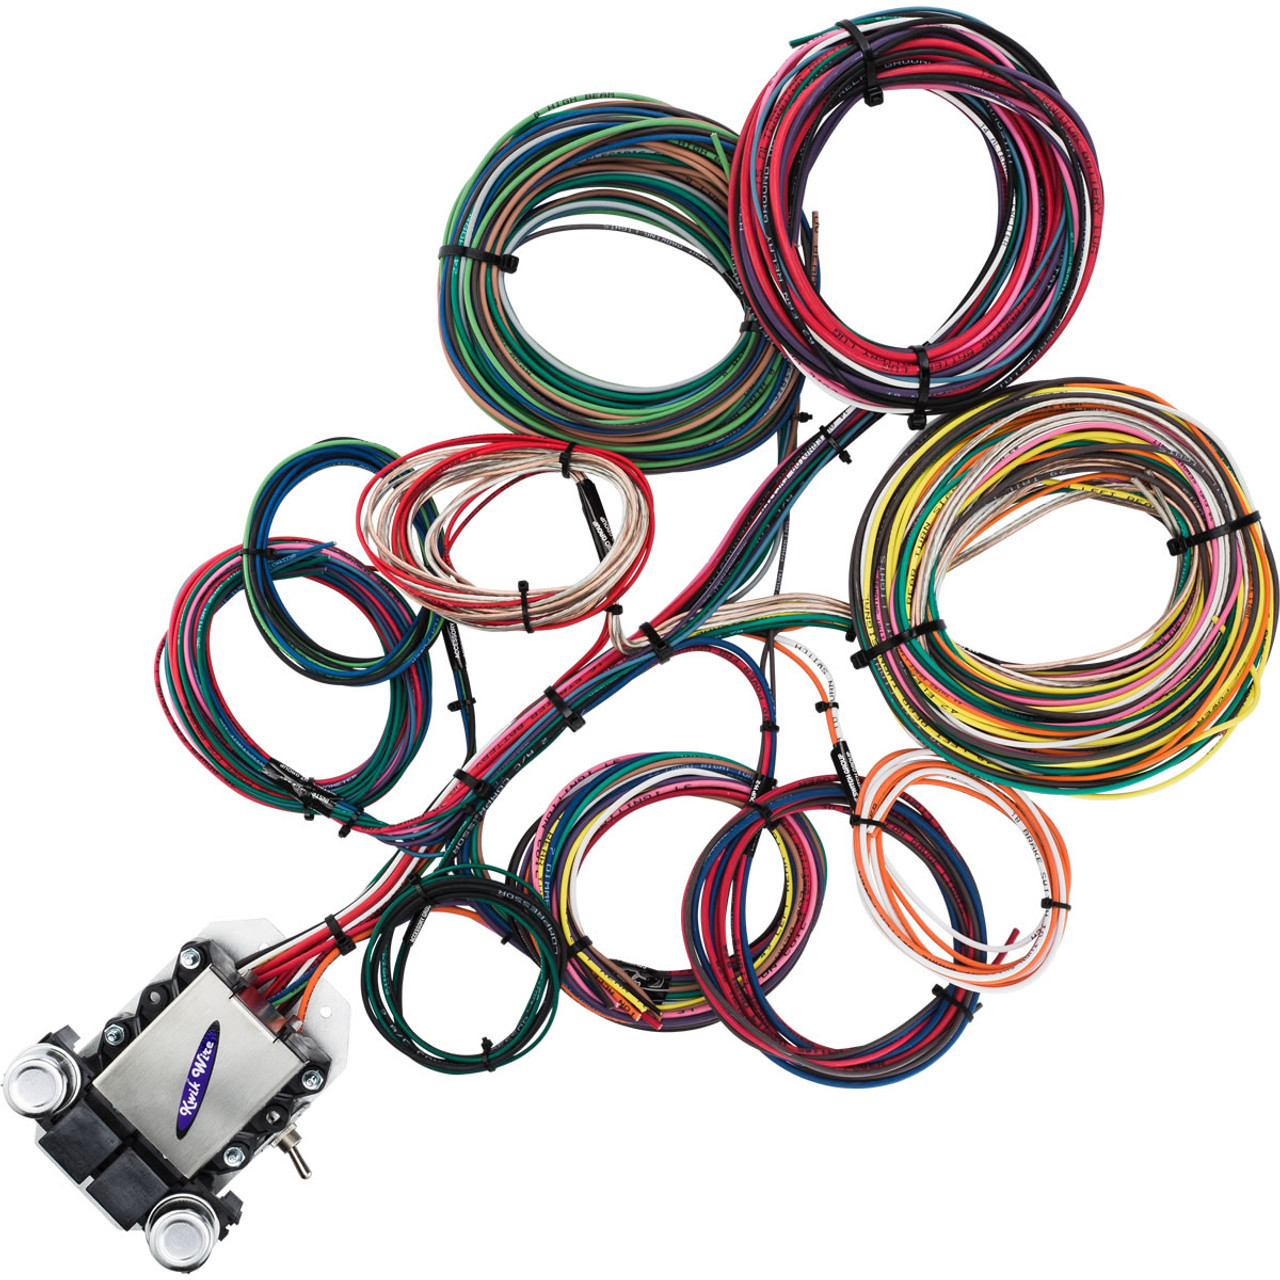 small resolution of 14 circuit ford wire harness kwikwire com electrify your ride electrical wire harness design software electrical wire harness